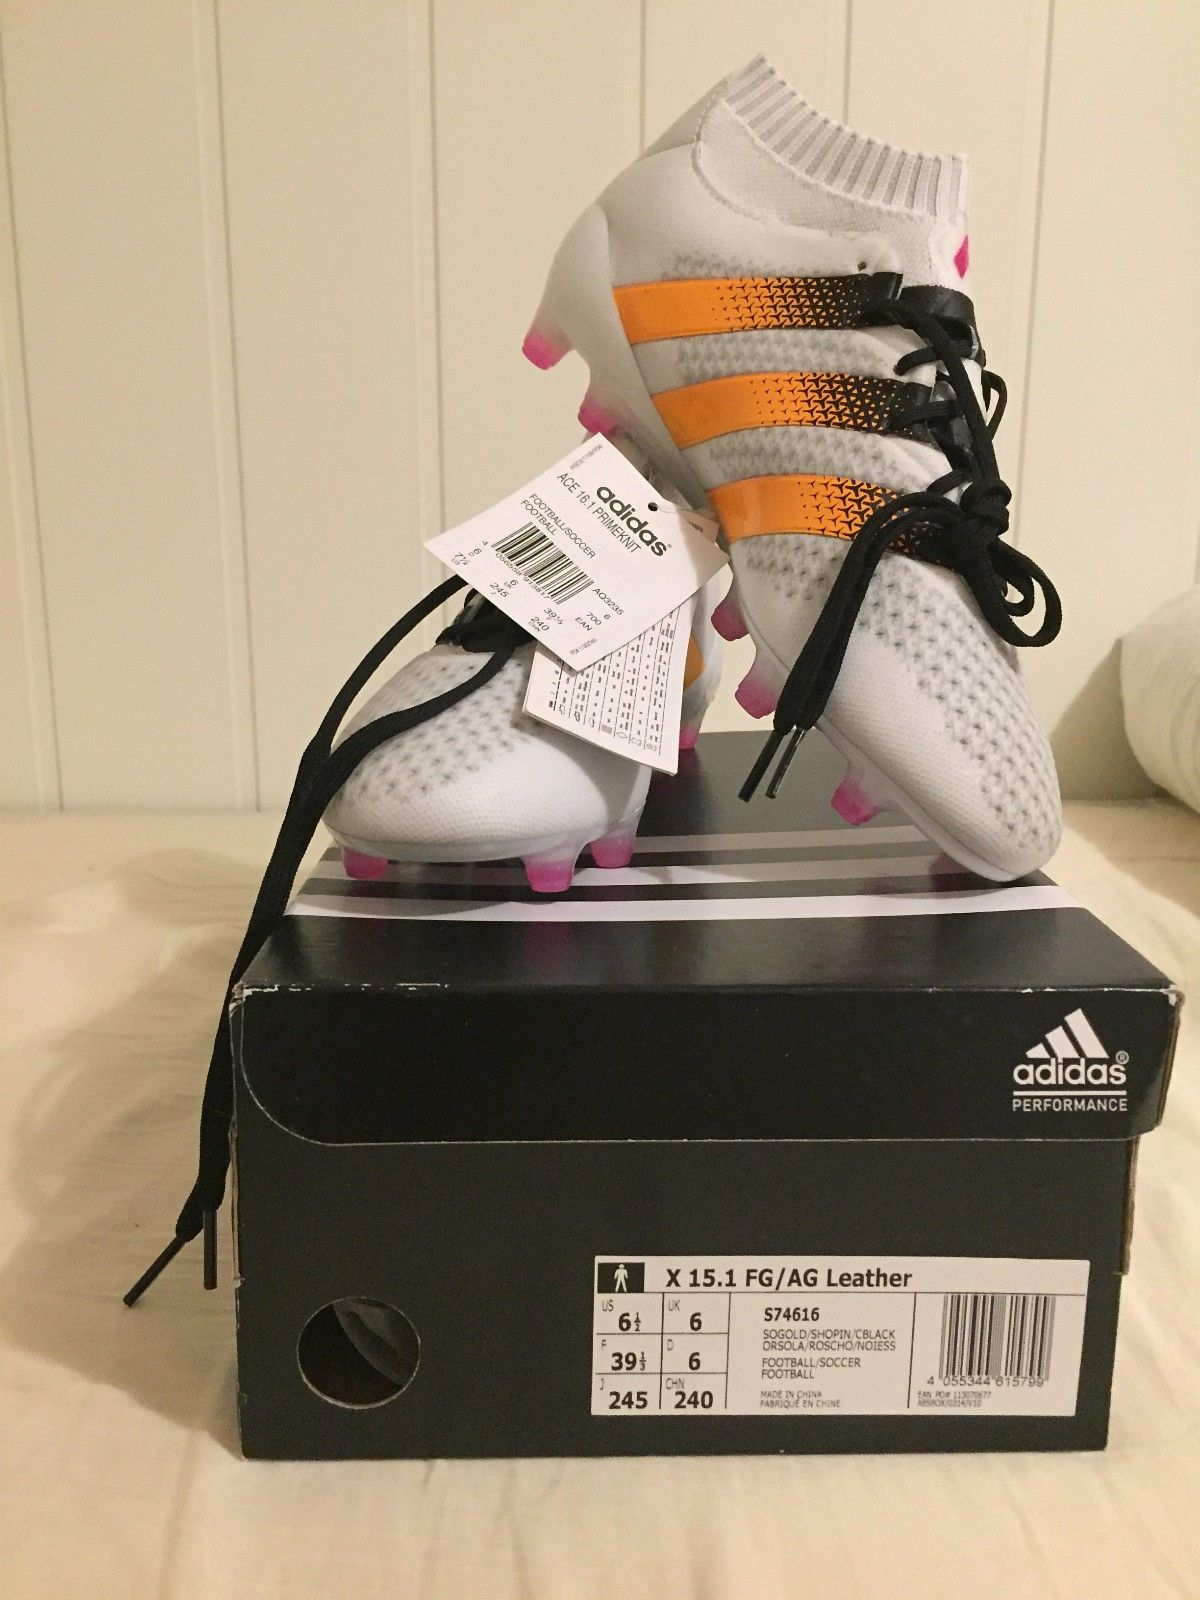 adidas running shoes sale, adidas Performance ACE 16.1 FGAG